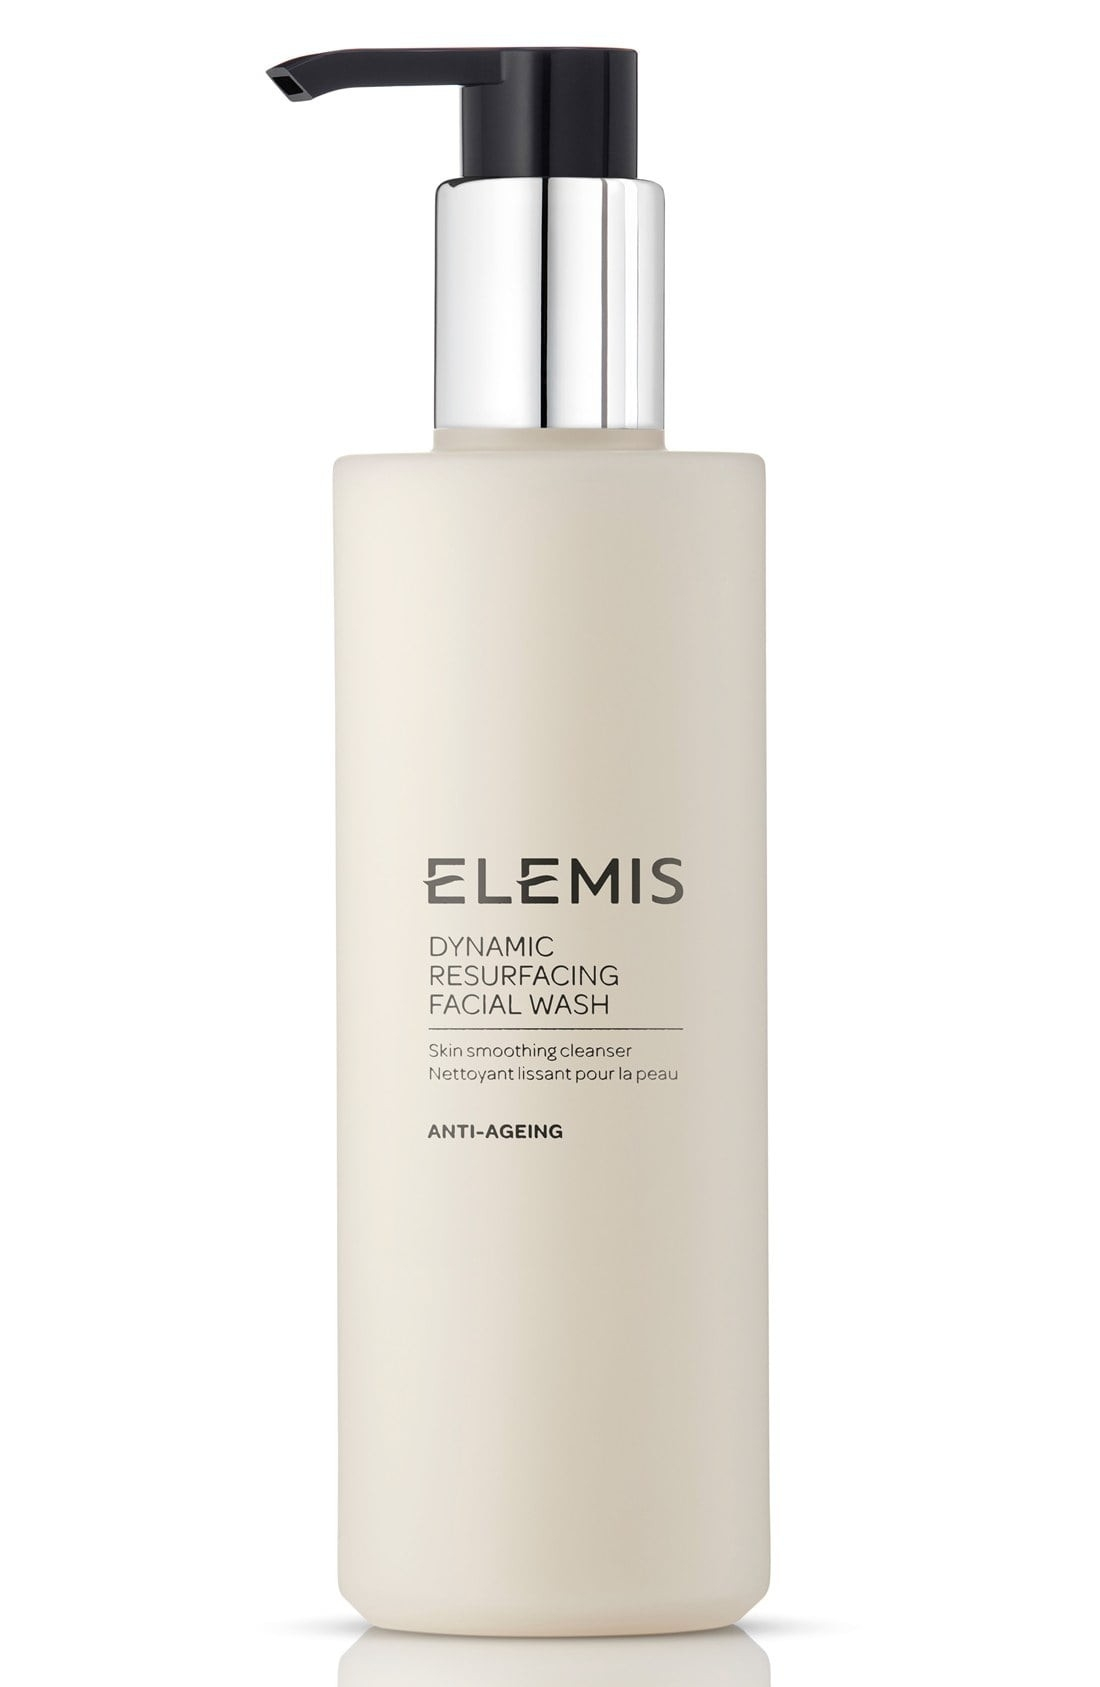 Elemis All Skin Care: Moisturizers, Serums, Cleansers & More  Elemis Advent Calendar 2020